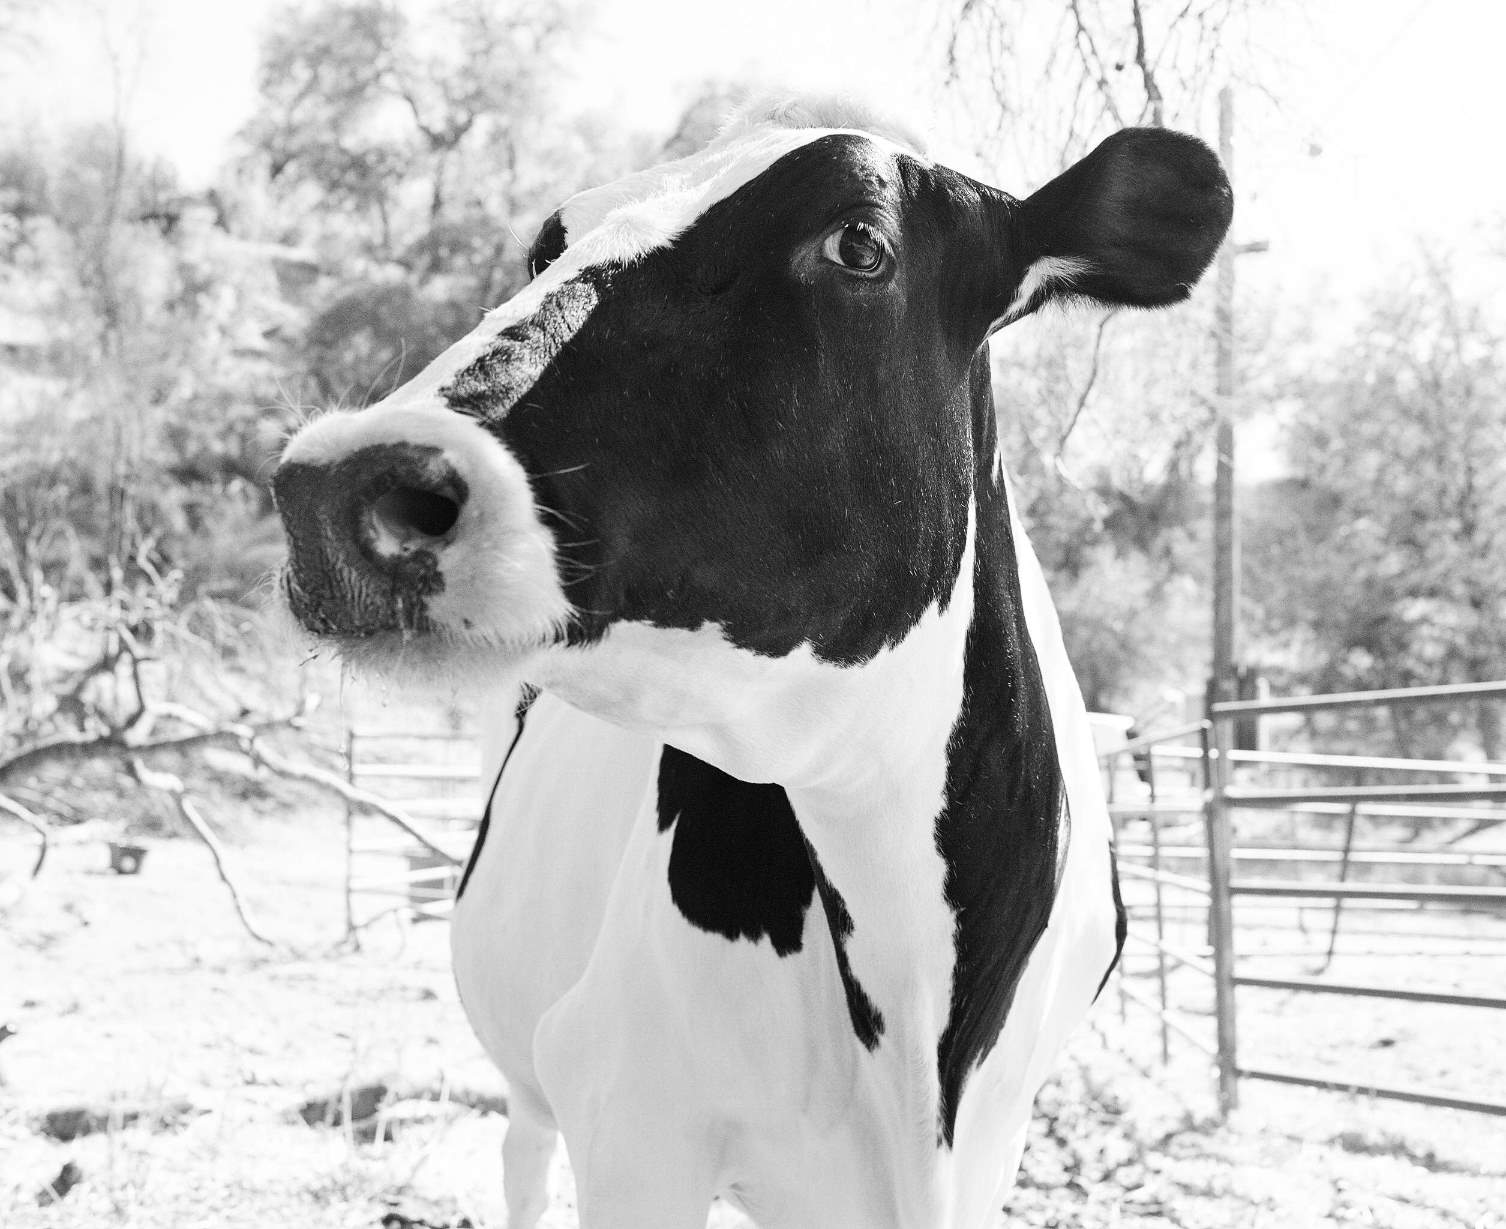 Molly - one of the real cows behind the 'Eat Mor Chikin' campaign